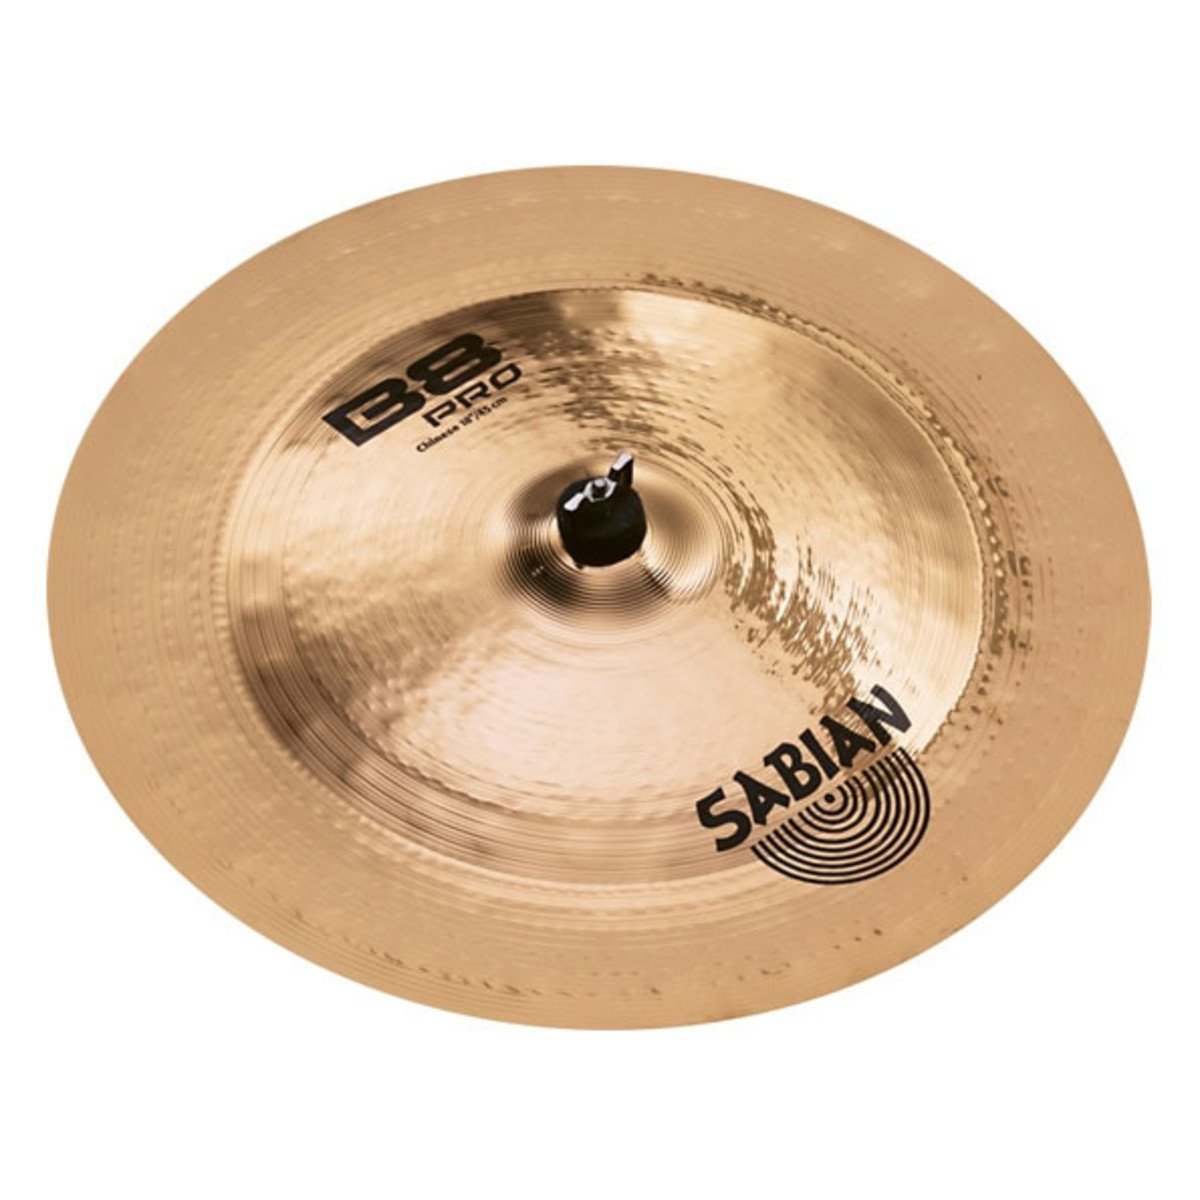 sabian b8 pro 18 39 39 chinese cymbal at gear4music. Black Bedroom Furniture Sets. Home Design Ideas